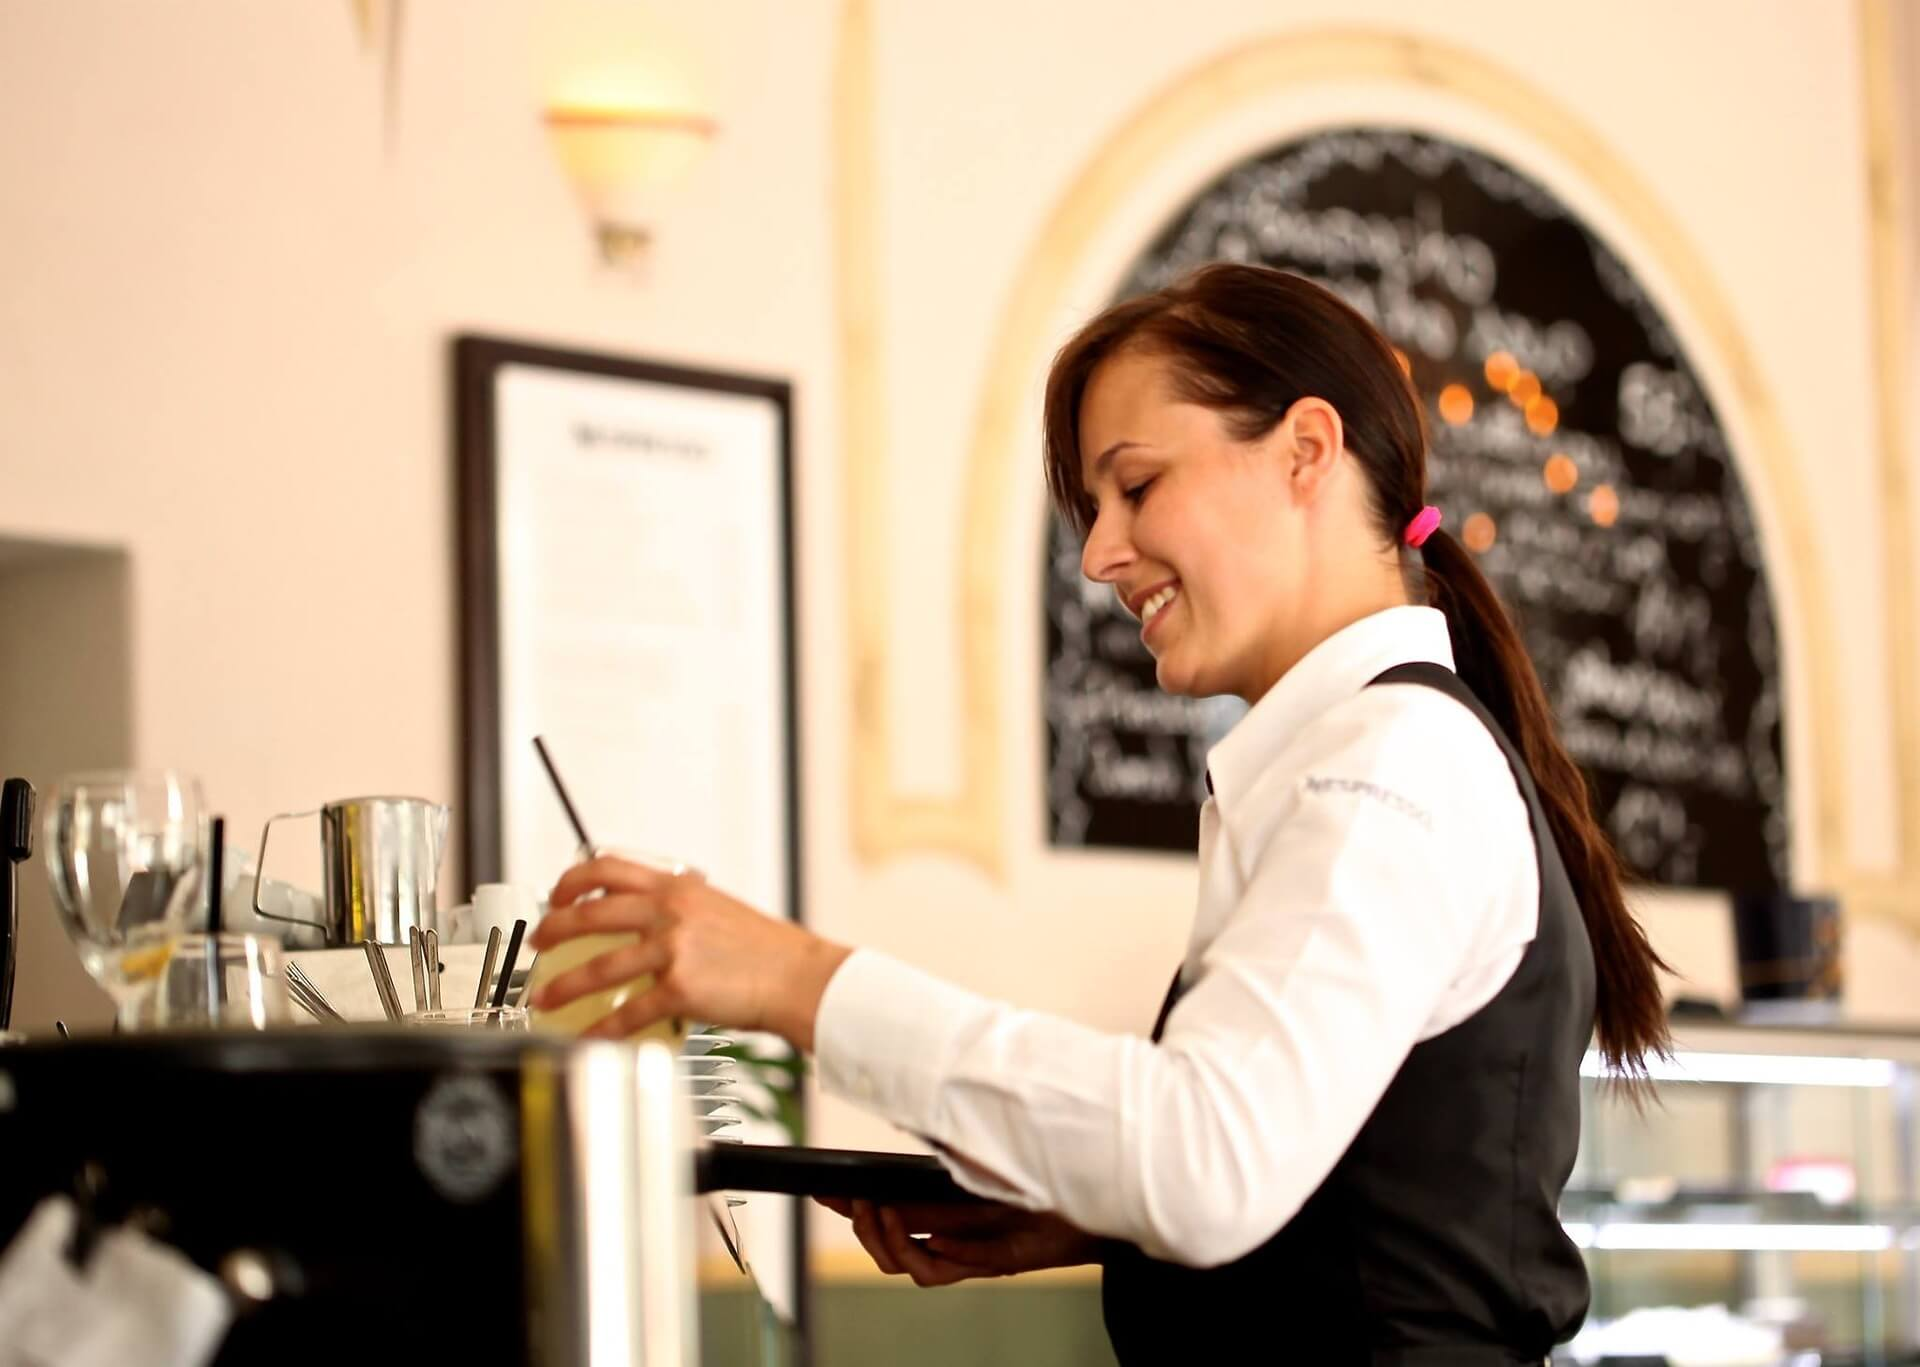 Image for hiring staff for hospitality services